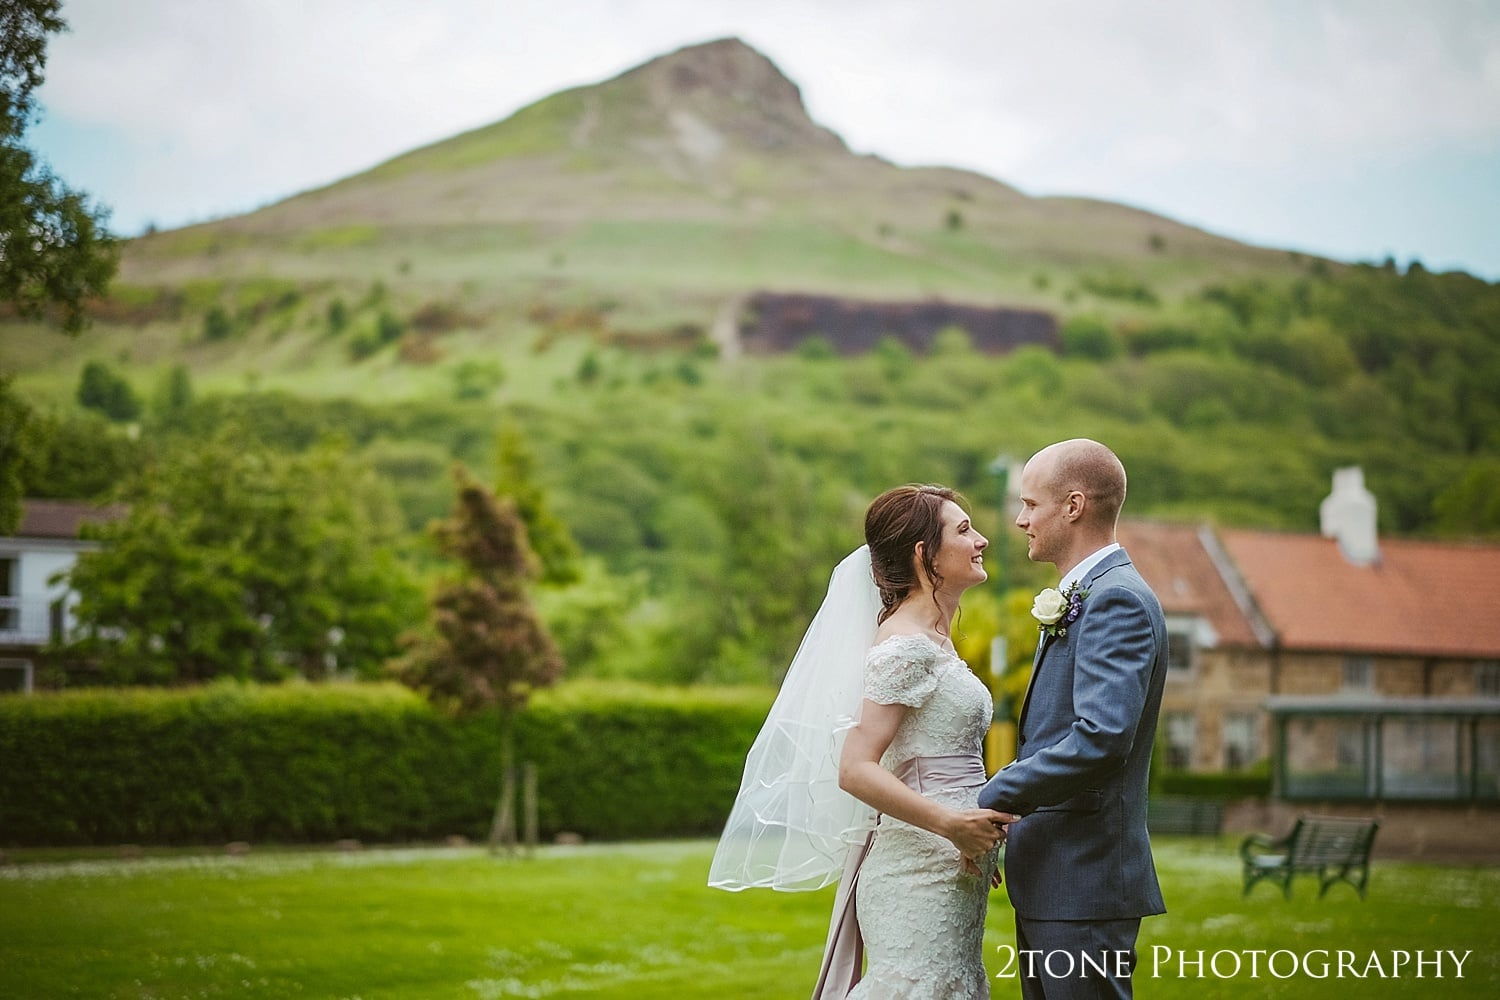 Wedding Photography at Roseberry Topping.  St Oswin's Church in Newton Under Roseberry by 2tone photography www.2tonephotograpy.co.uk